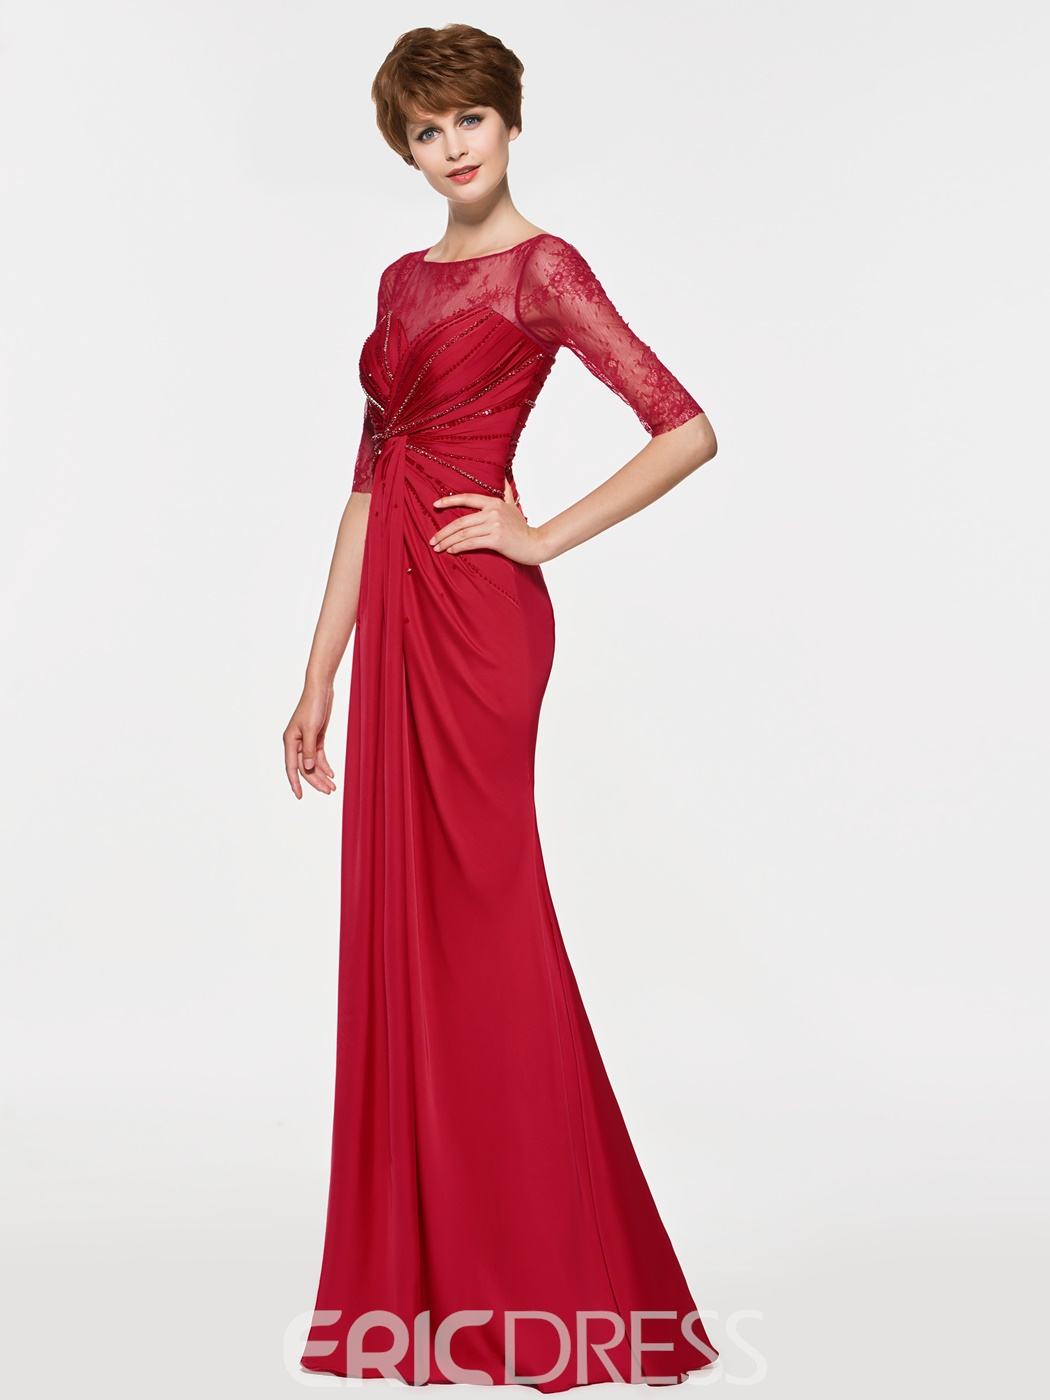 Ericdress Scoop Mermaid Half Sleeves Sheath Long Mother Of The Bride Dress